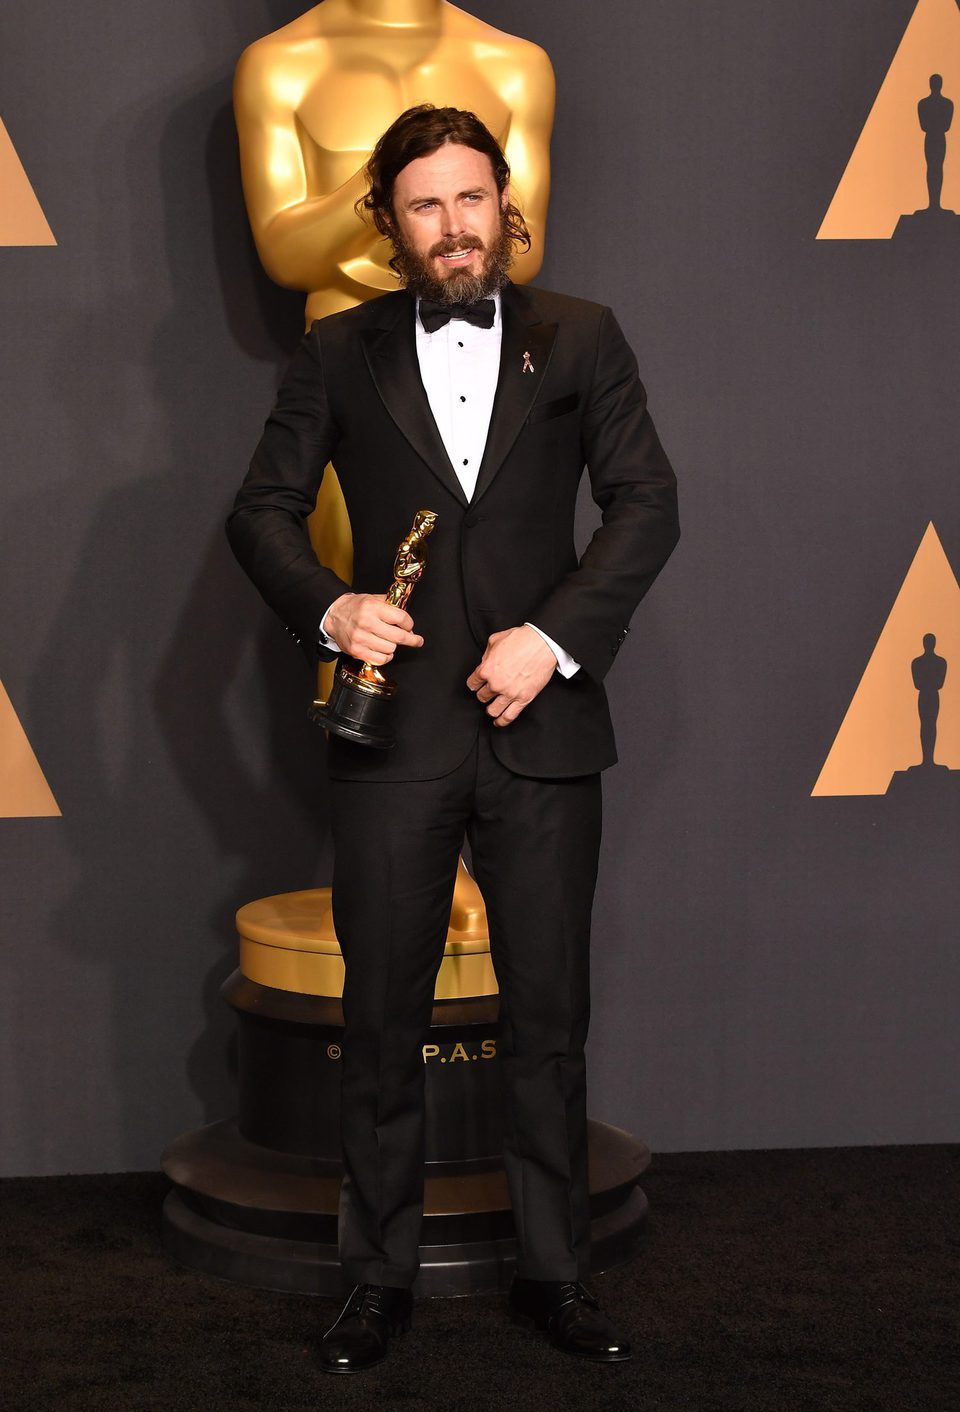 Casey Affleck Best Actor for 'Manchester by the sea'